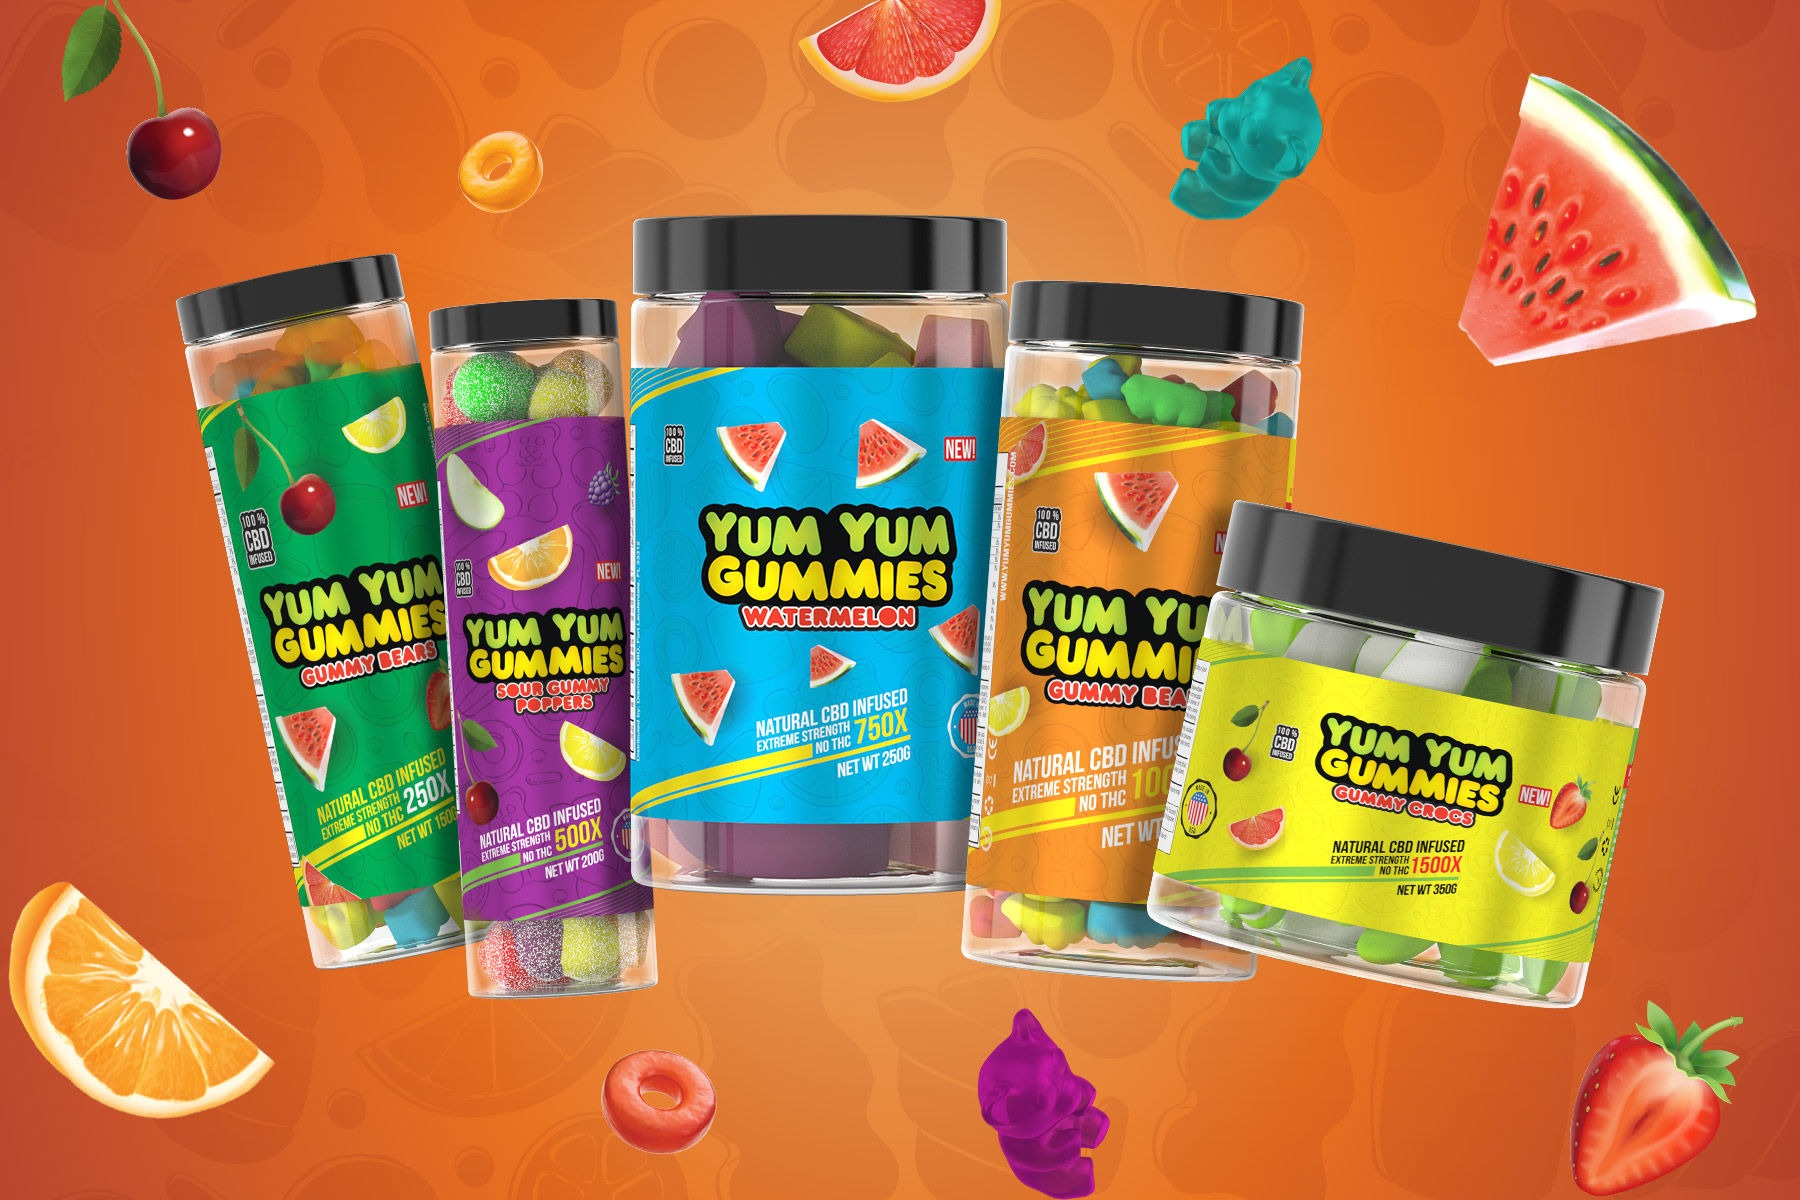 Yum Yum Gummies: Because The Best CBD Edibles Are CBD Gummies